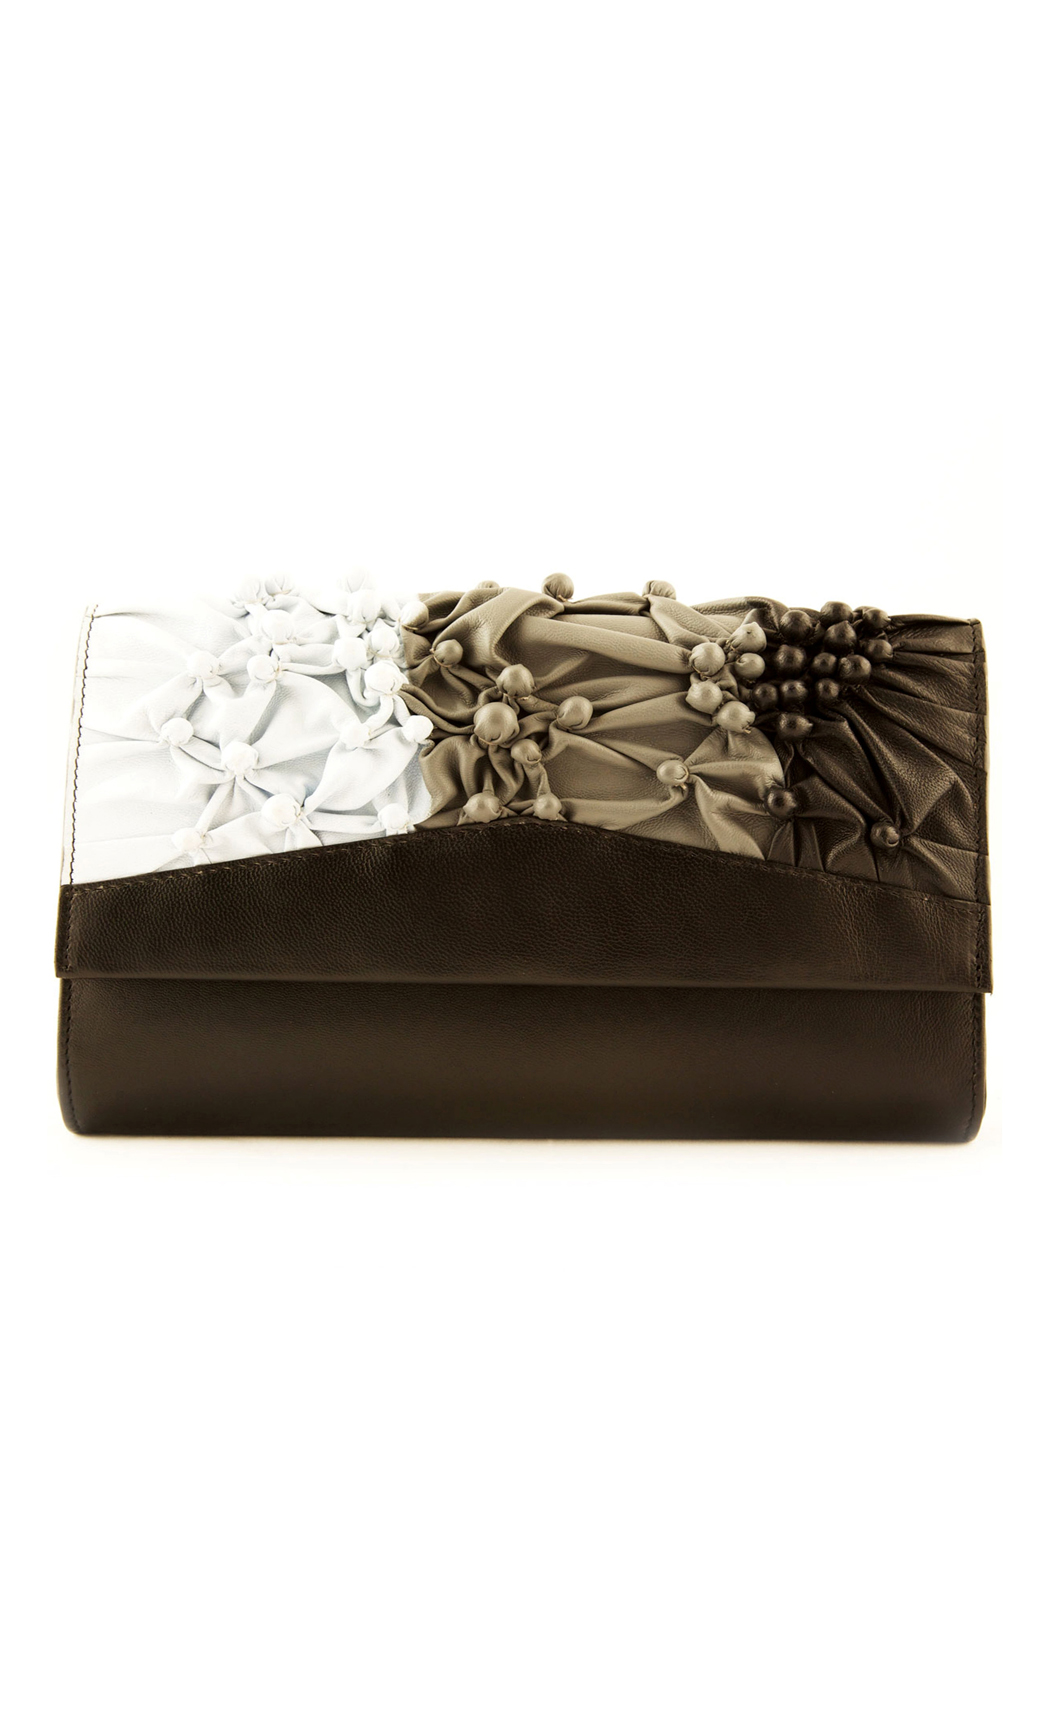 Bubbling Over Clutch in Shaded Black. Buy Online